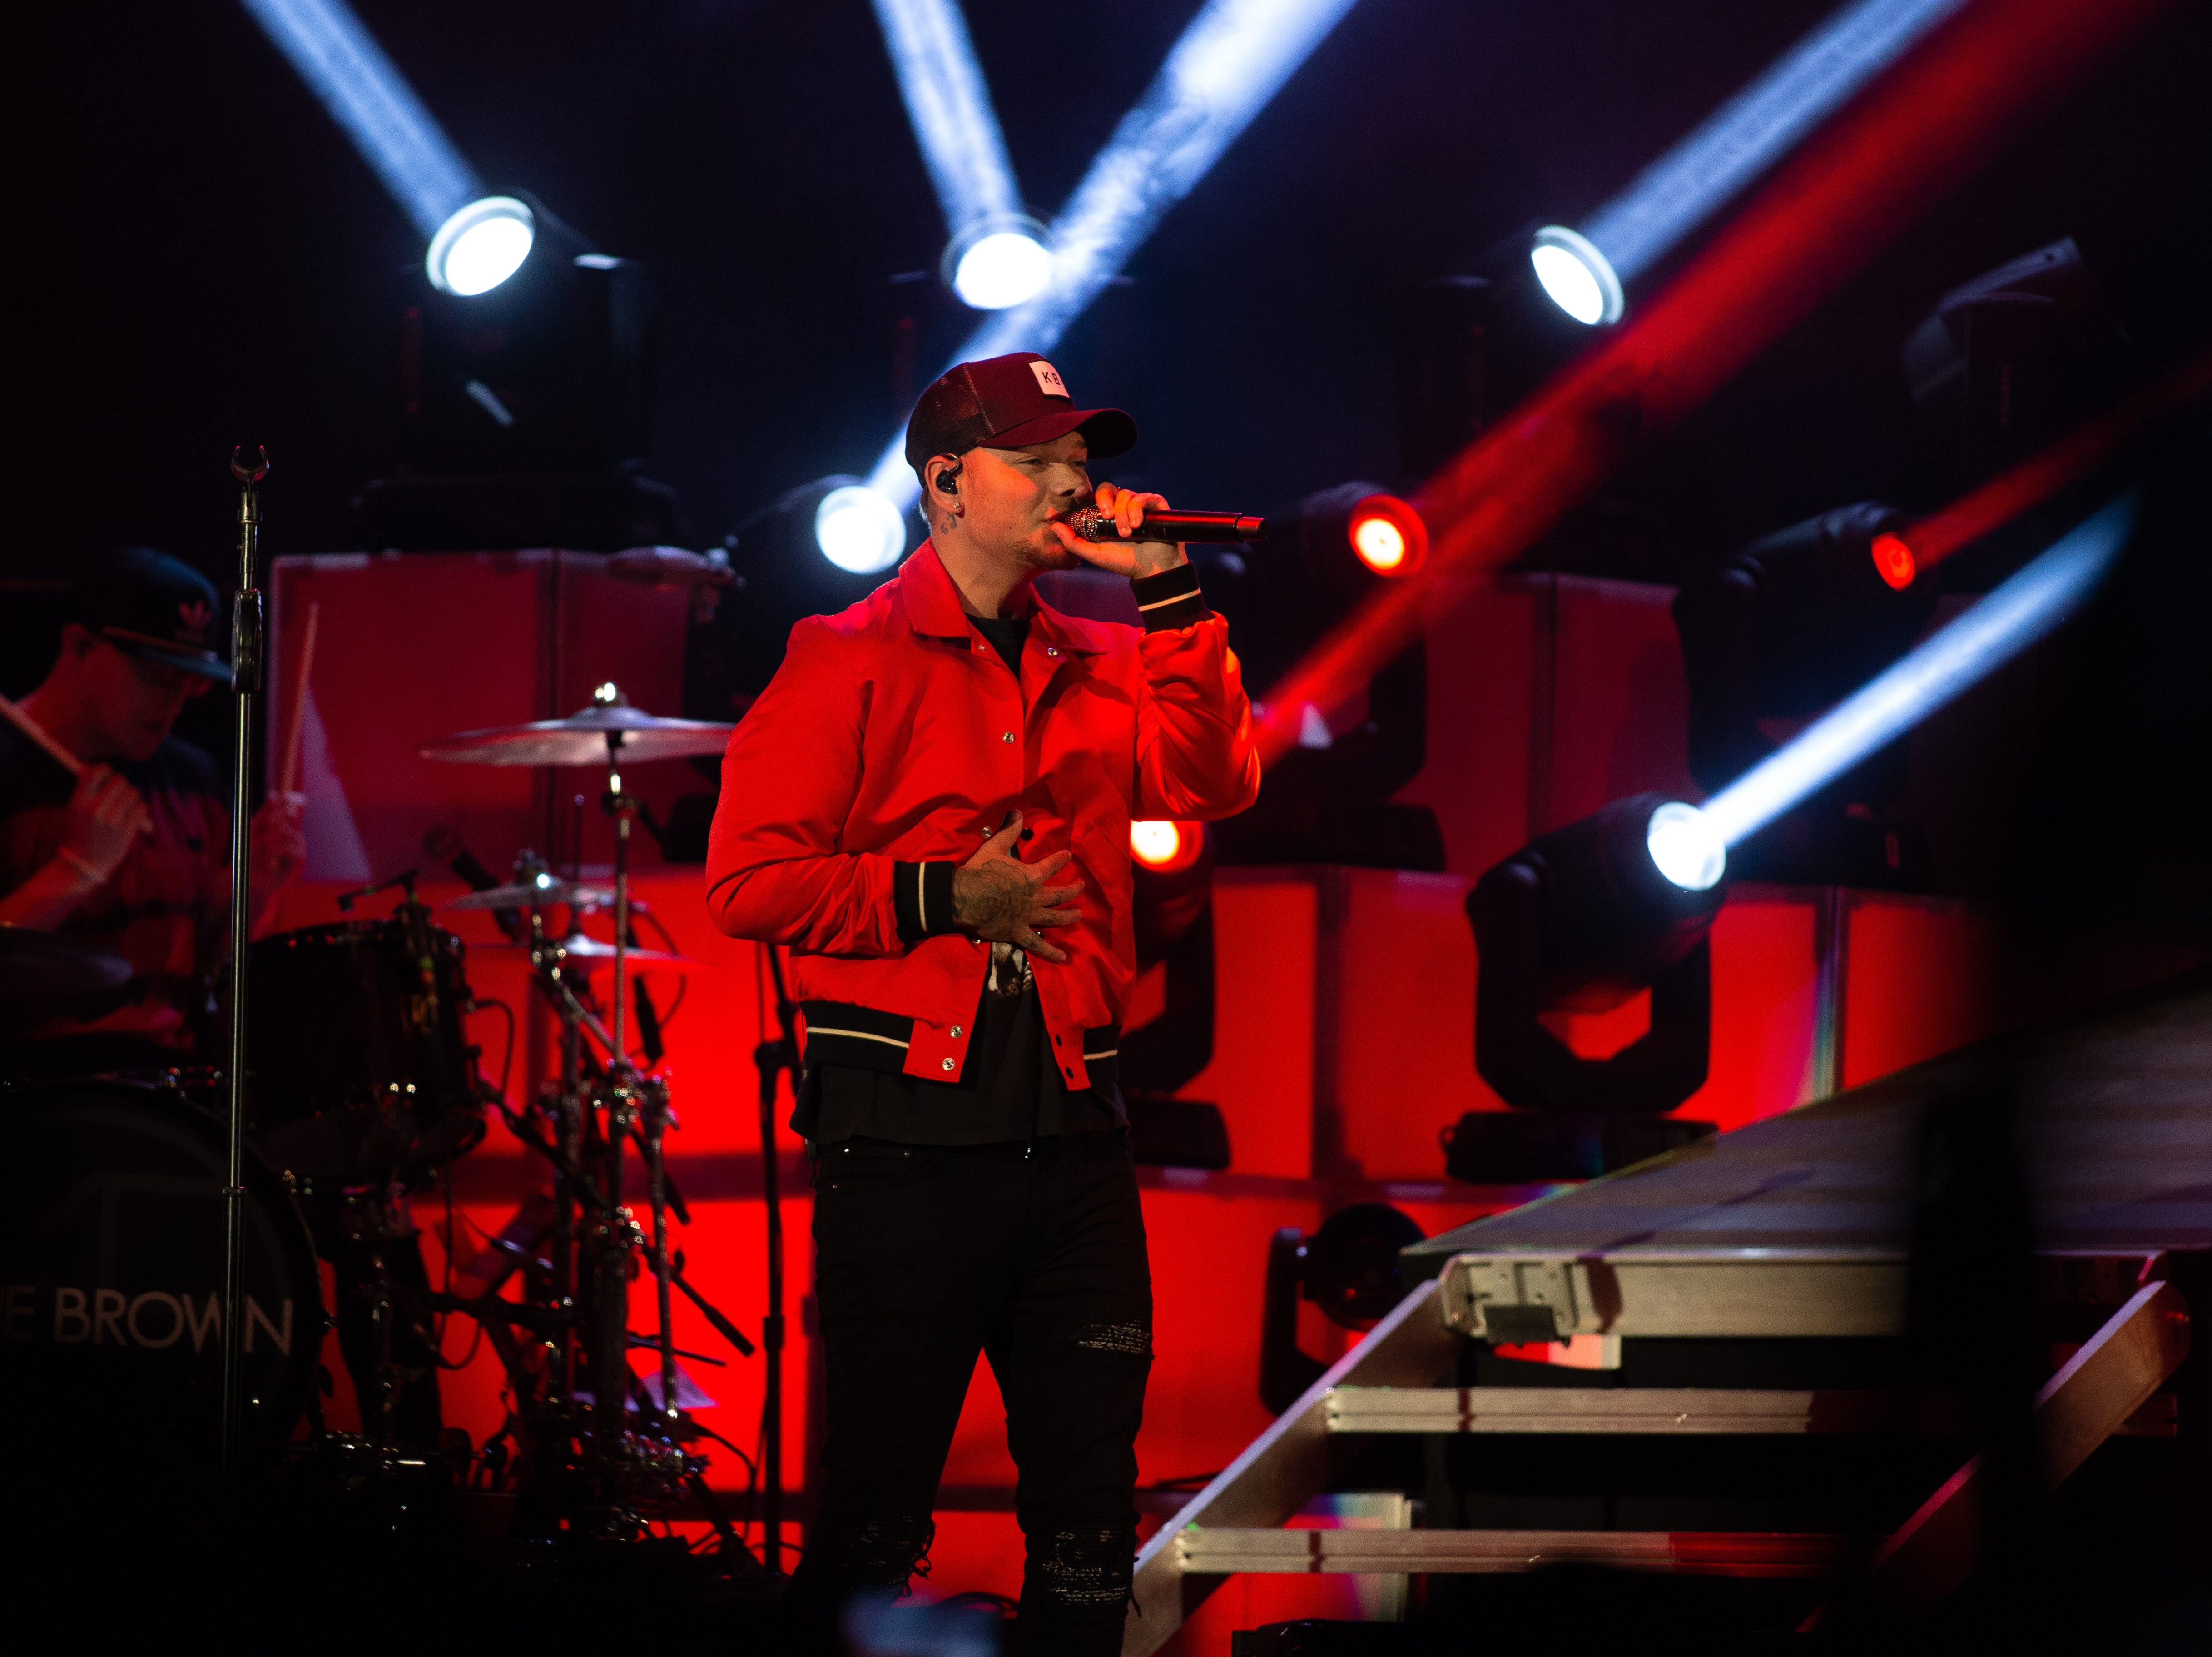 Kane Brown, wrapped in red light, was the second act during the Chris Young concert held at the Pan Am Center in Las Cruces on Thursday, Sept. 13, 2018.